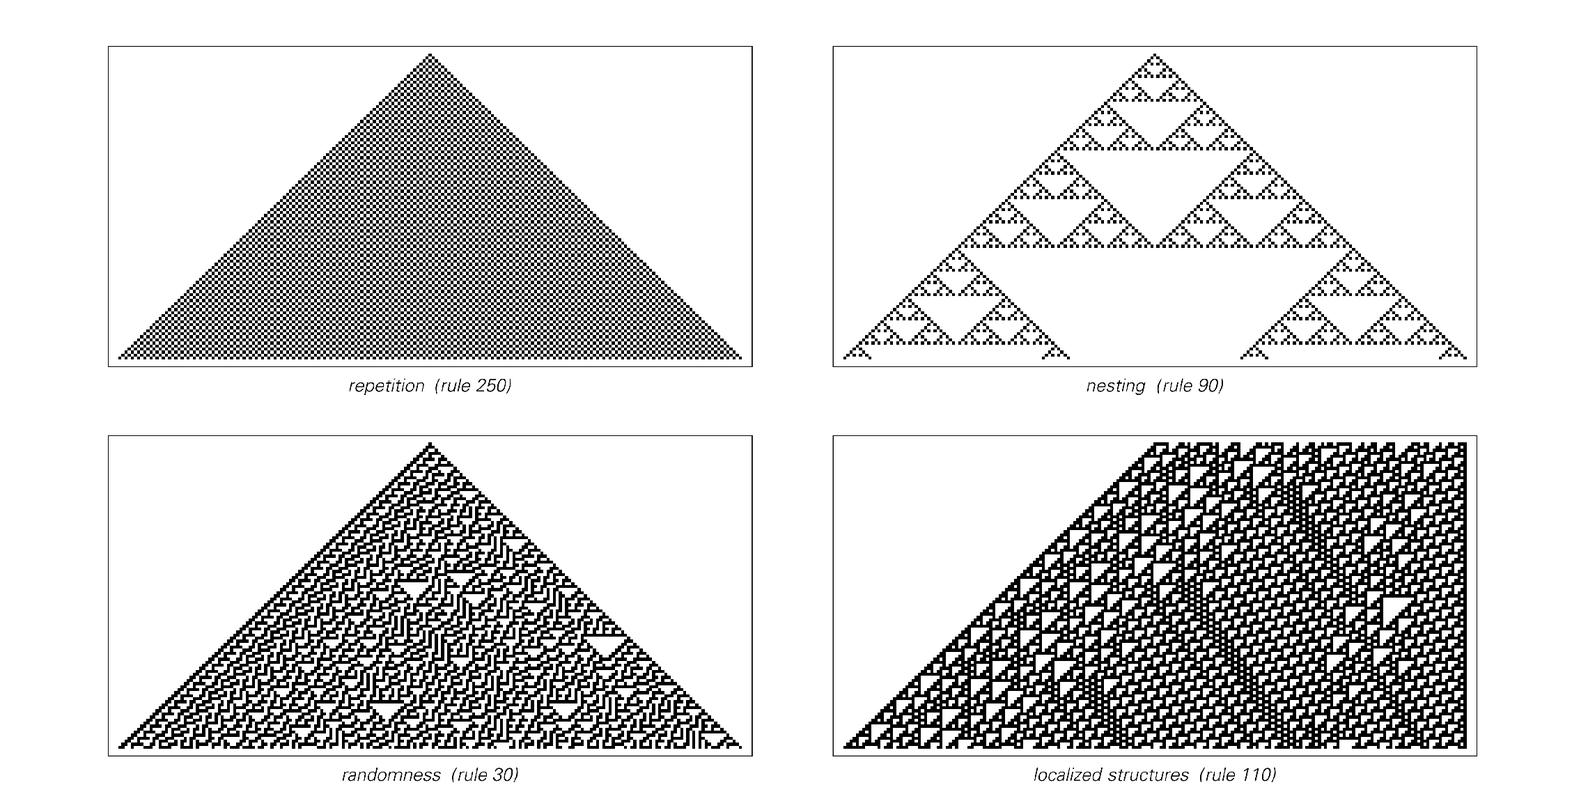 Basic examples of cellular automata